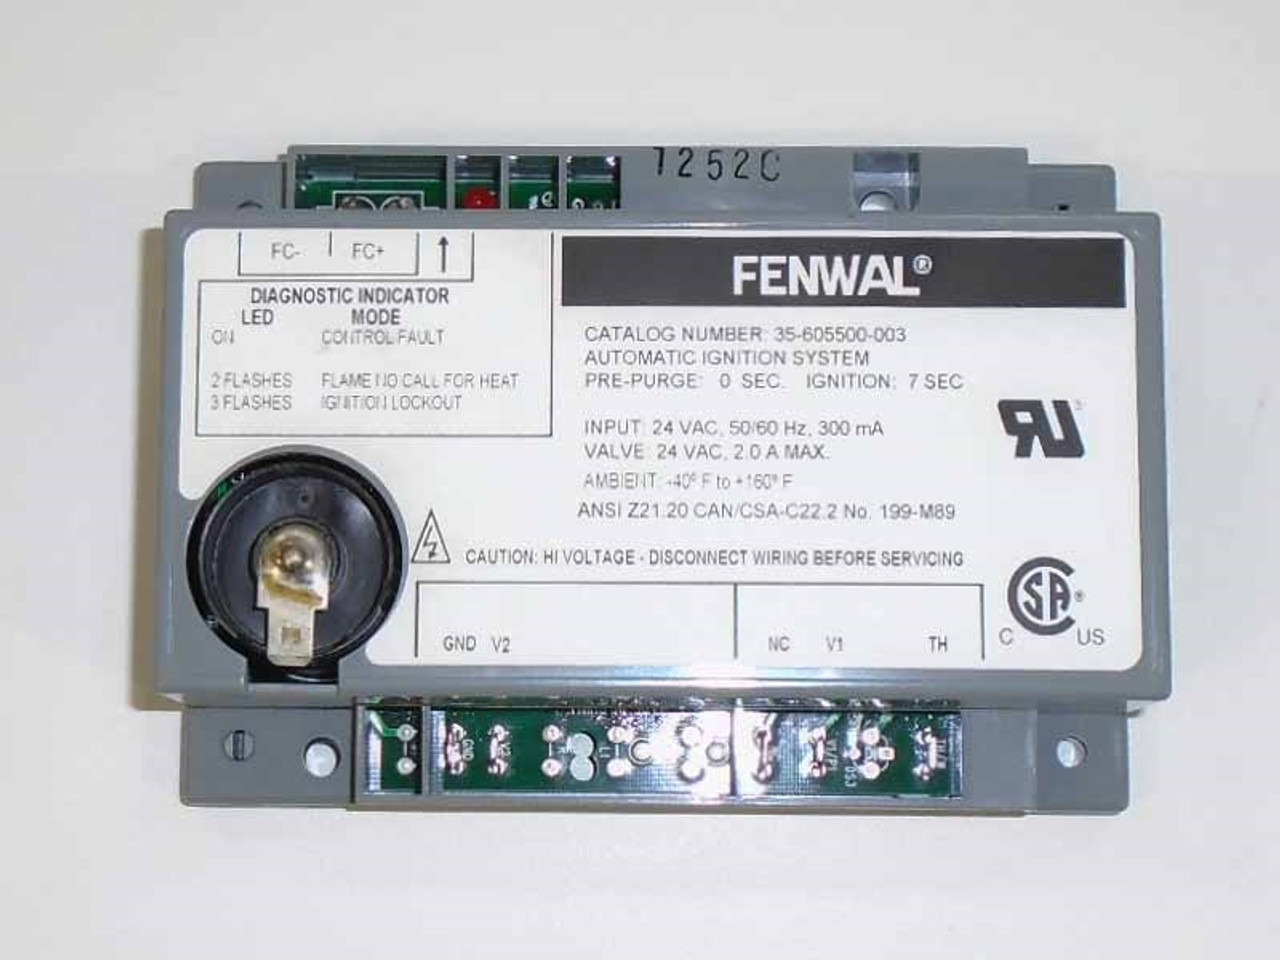 Fenwal Ignition Module Wiring Diagram 37 Wiring Diagram Images Wiring Diagrams